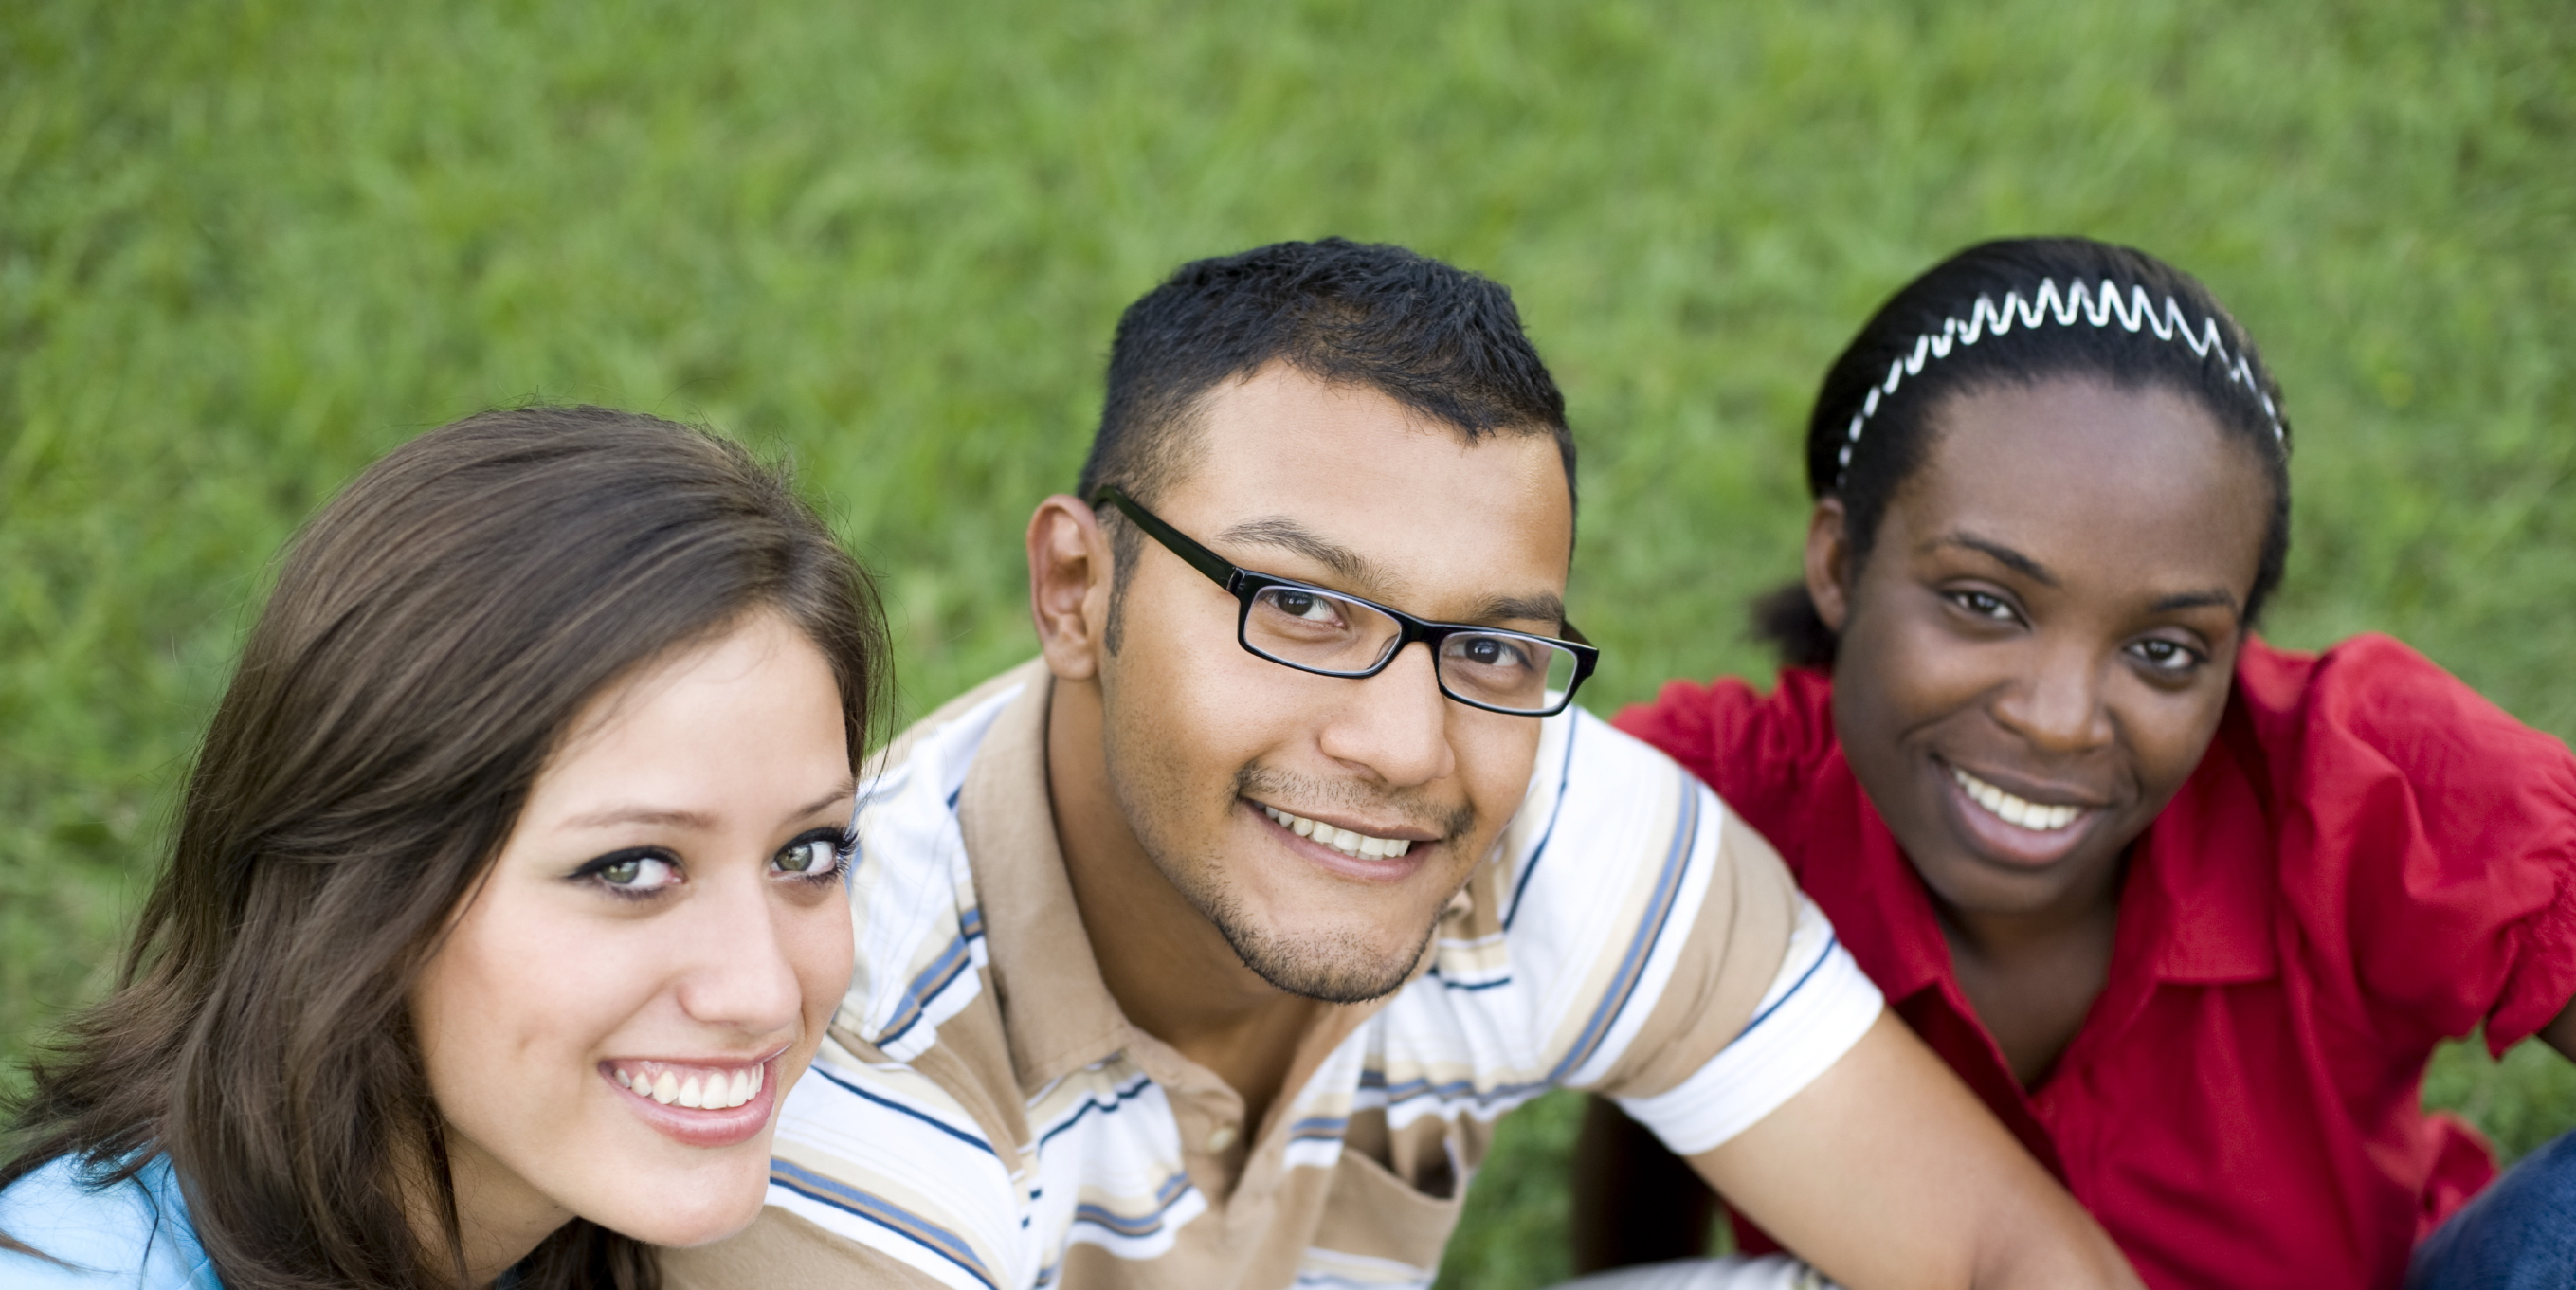 A white woman, a latino man, and a black woman sit together and look up to the camera smiling.